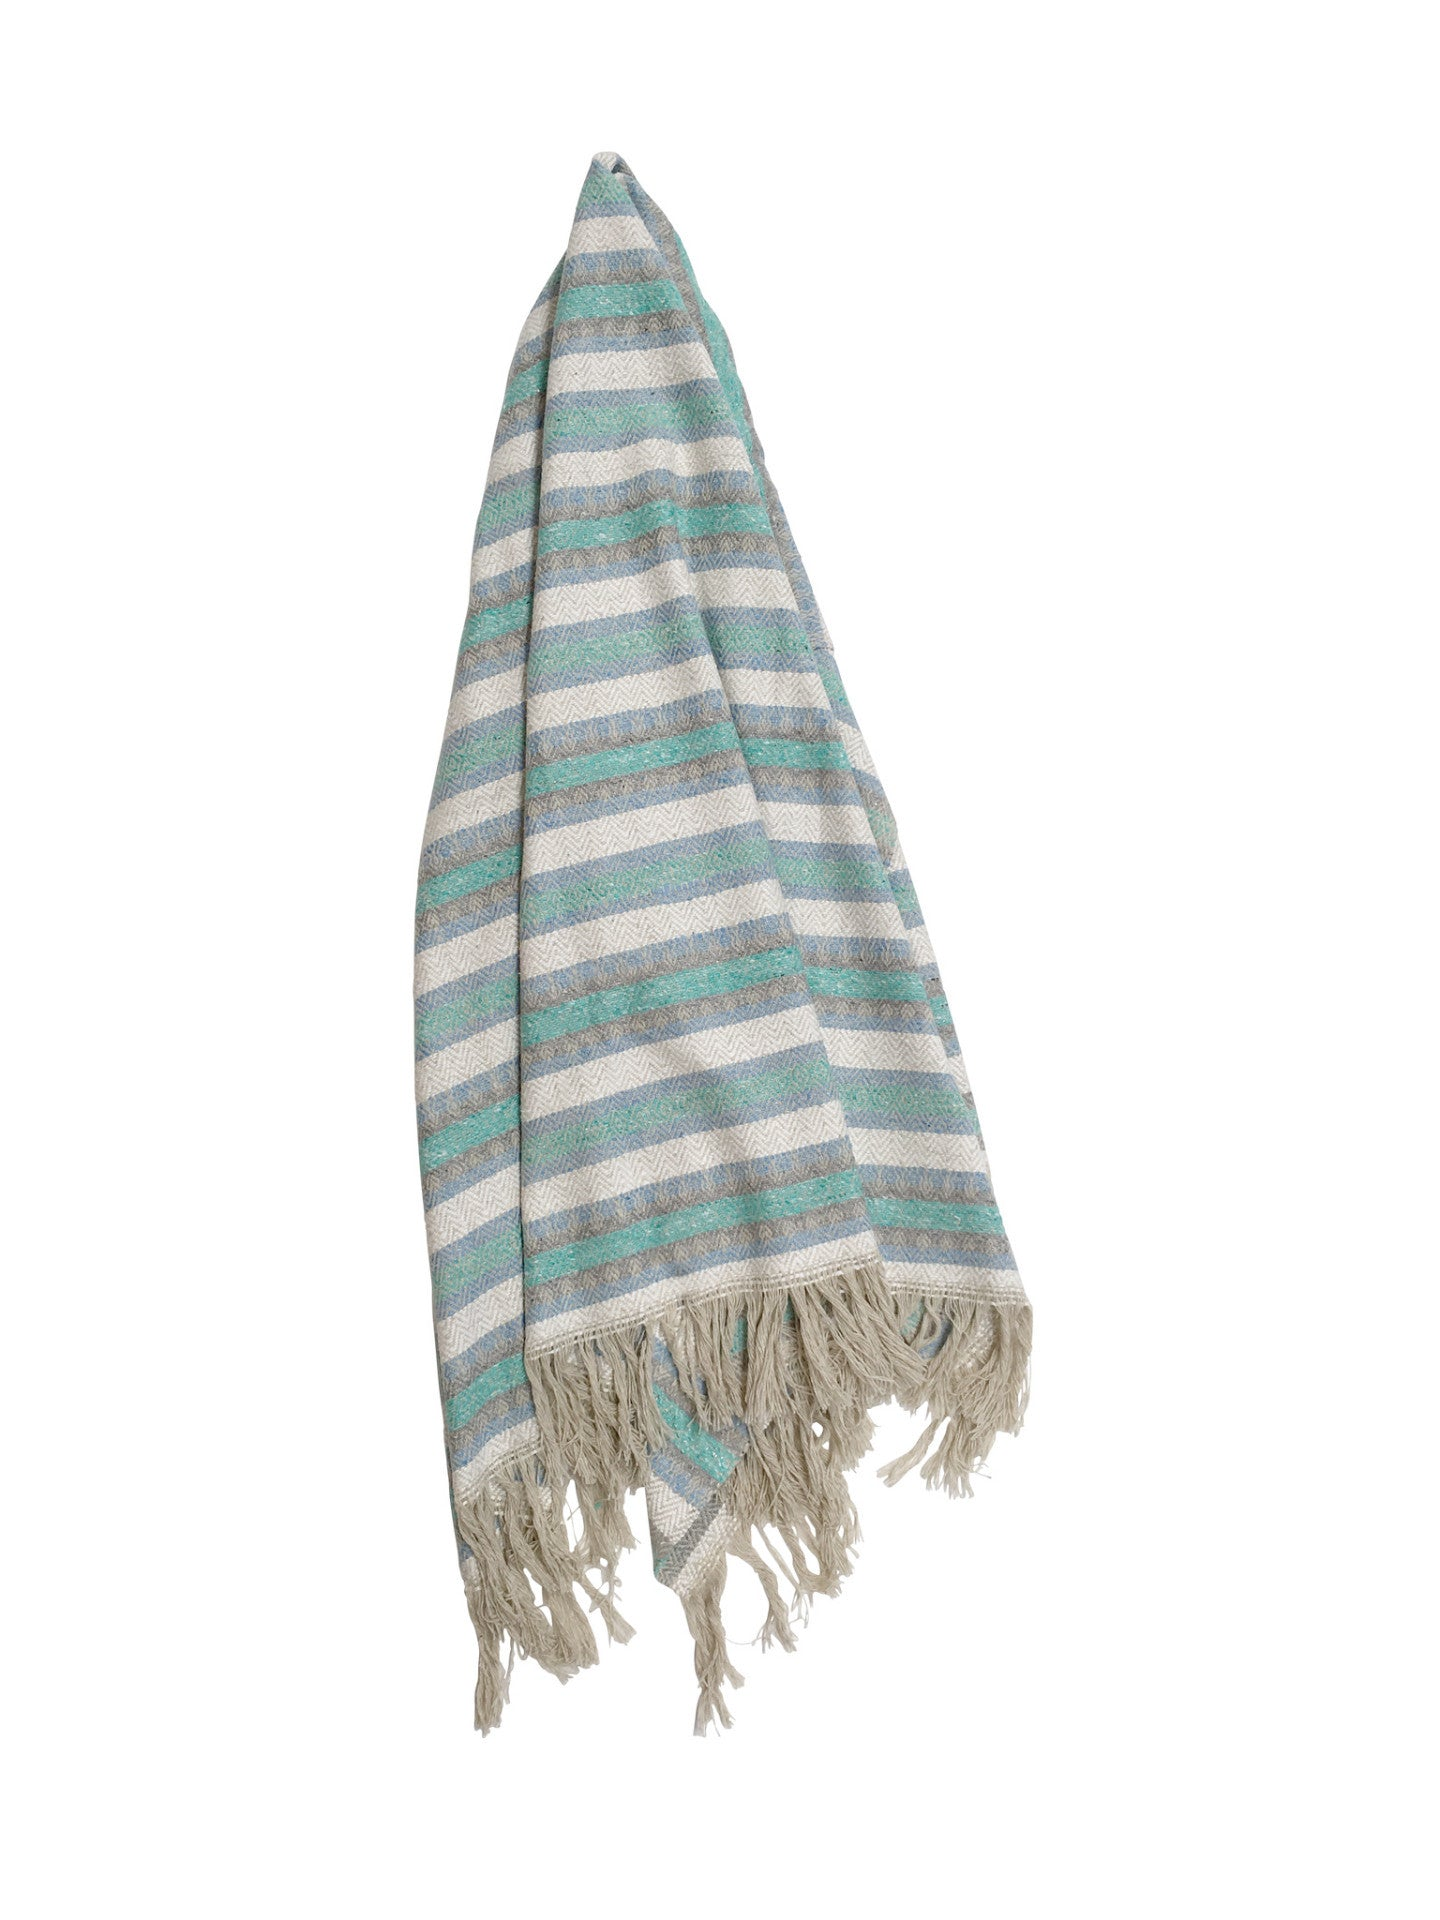 The Curacao: Pastel Blue, Mint, Grey & Off-White Striped Mexican Blanket